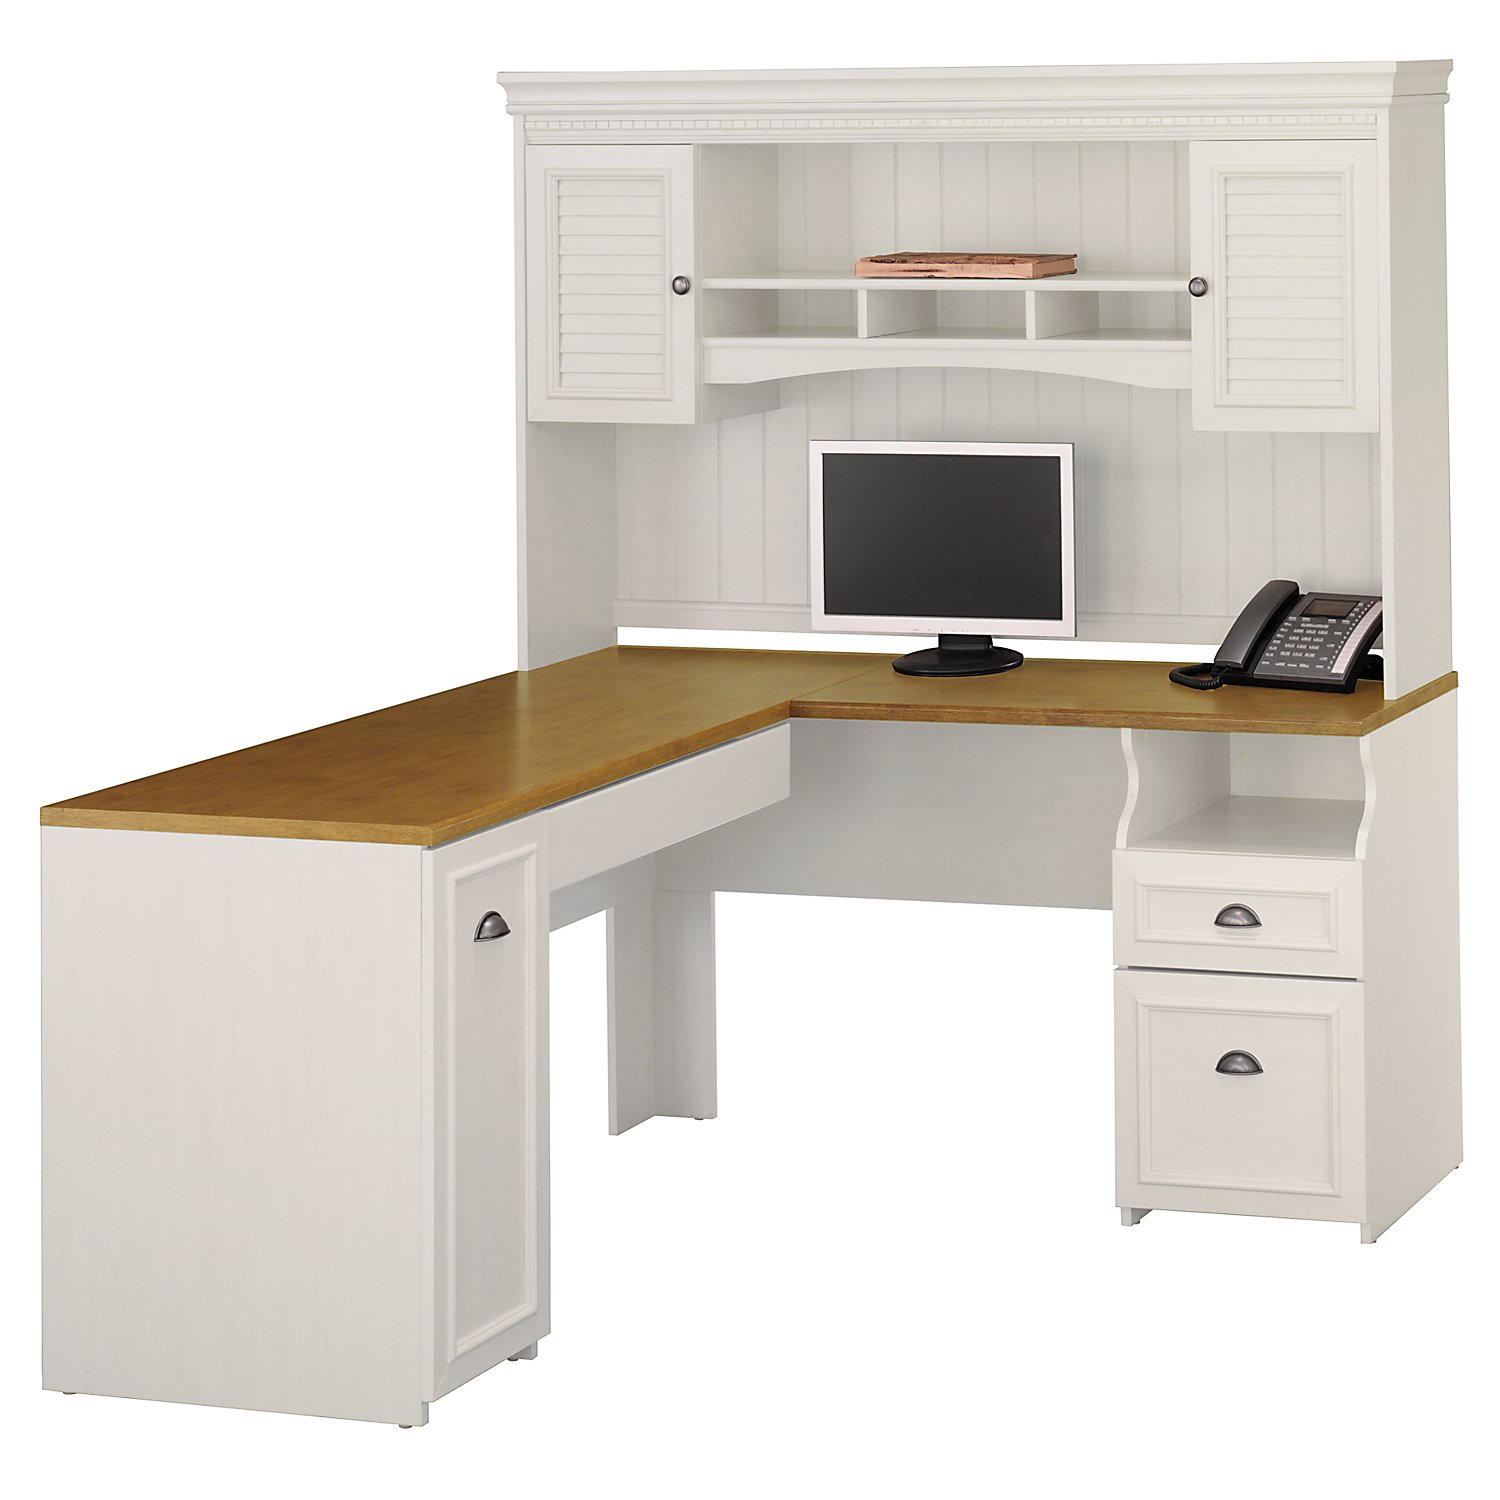 white L Shaped Desk with hutch and sorage with black handle ideas plus computer set and phone